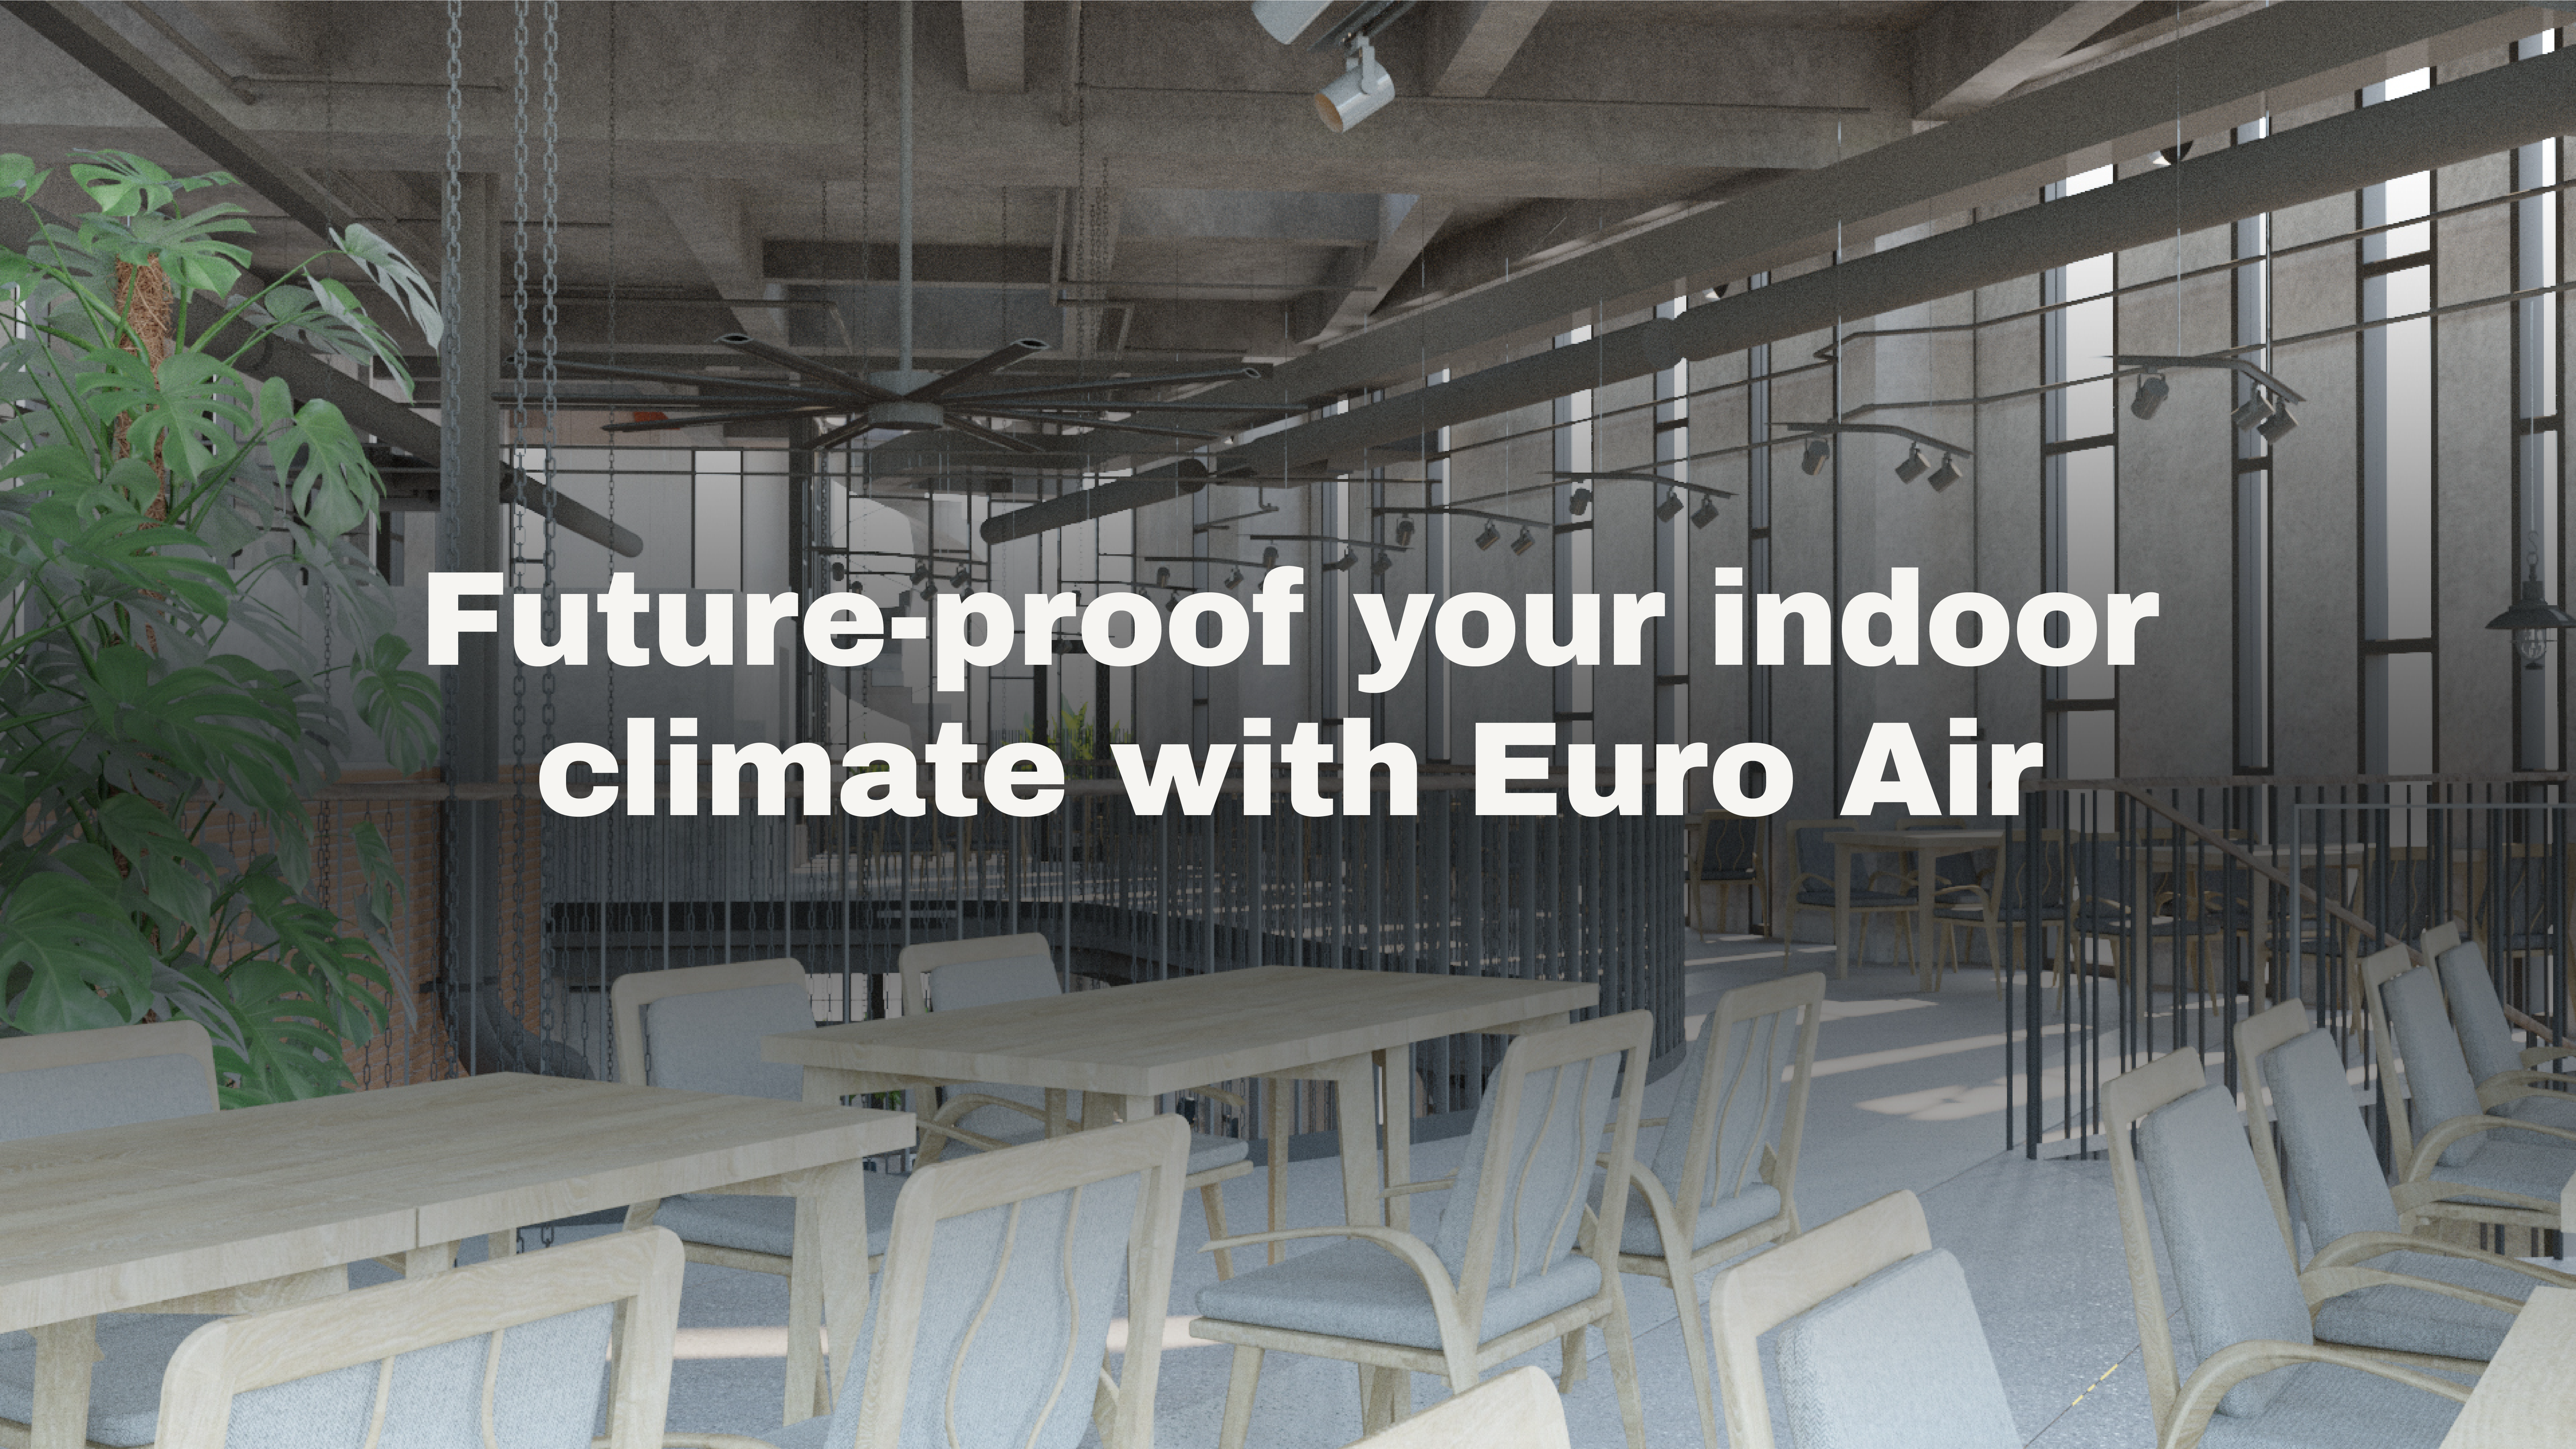 Future-proof your indoor climate with Euro Air